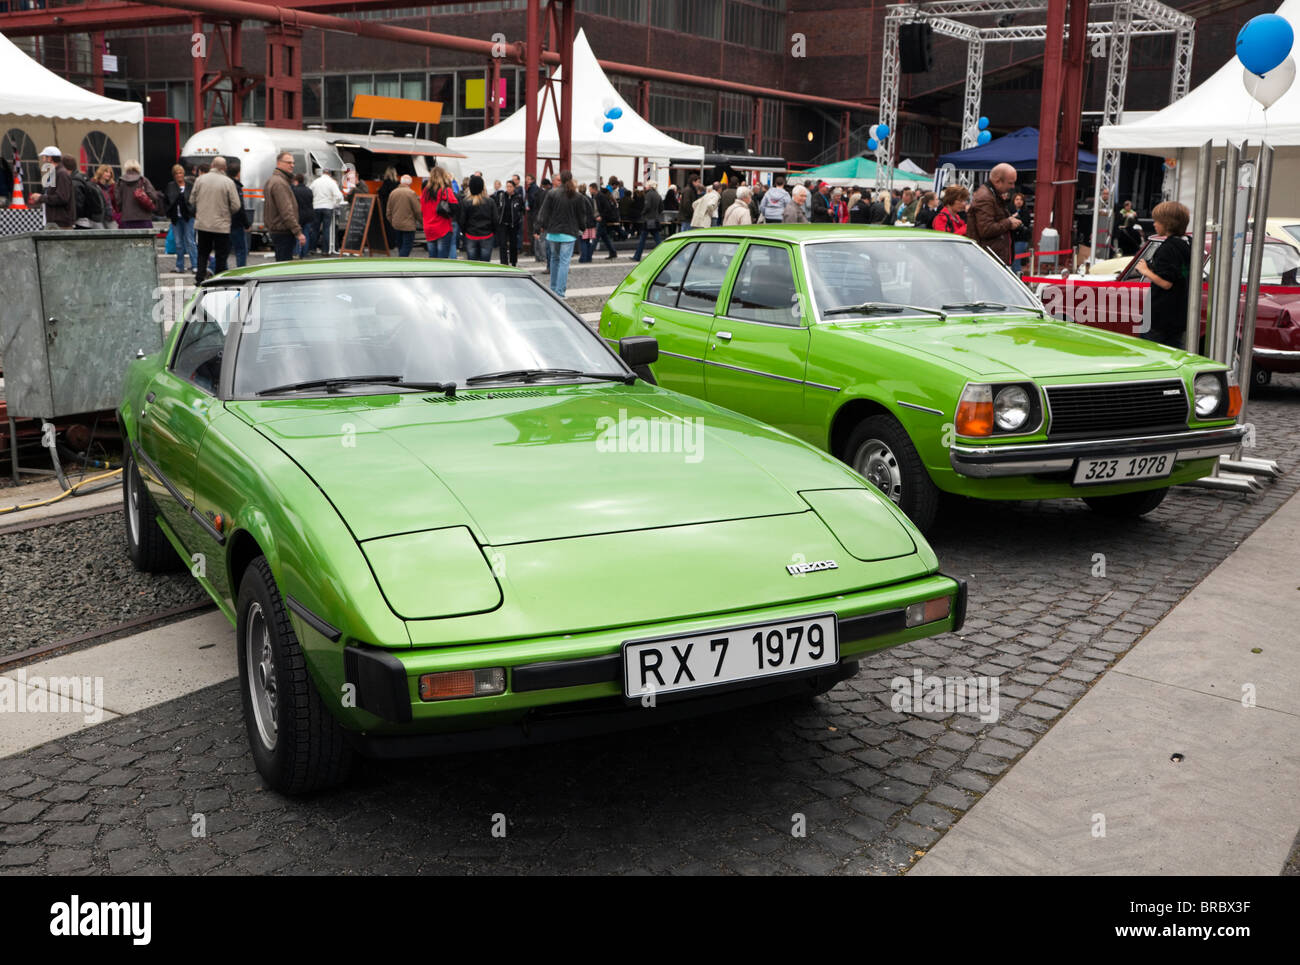 Green 1979 Mazda RX 7 And 1978 Mazda 323 Cars Displayed At The MX